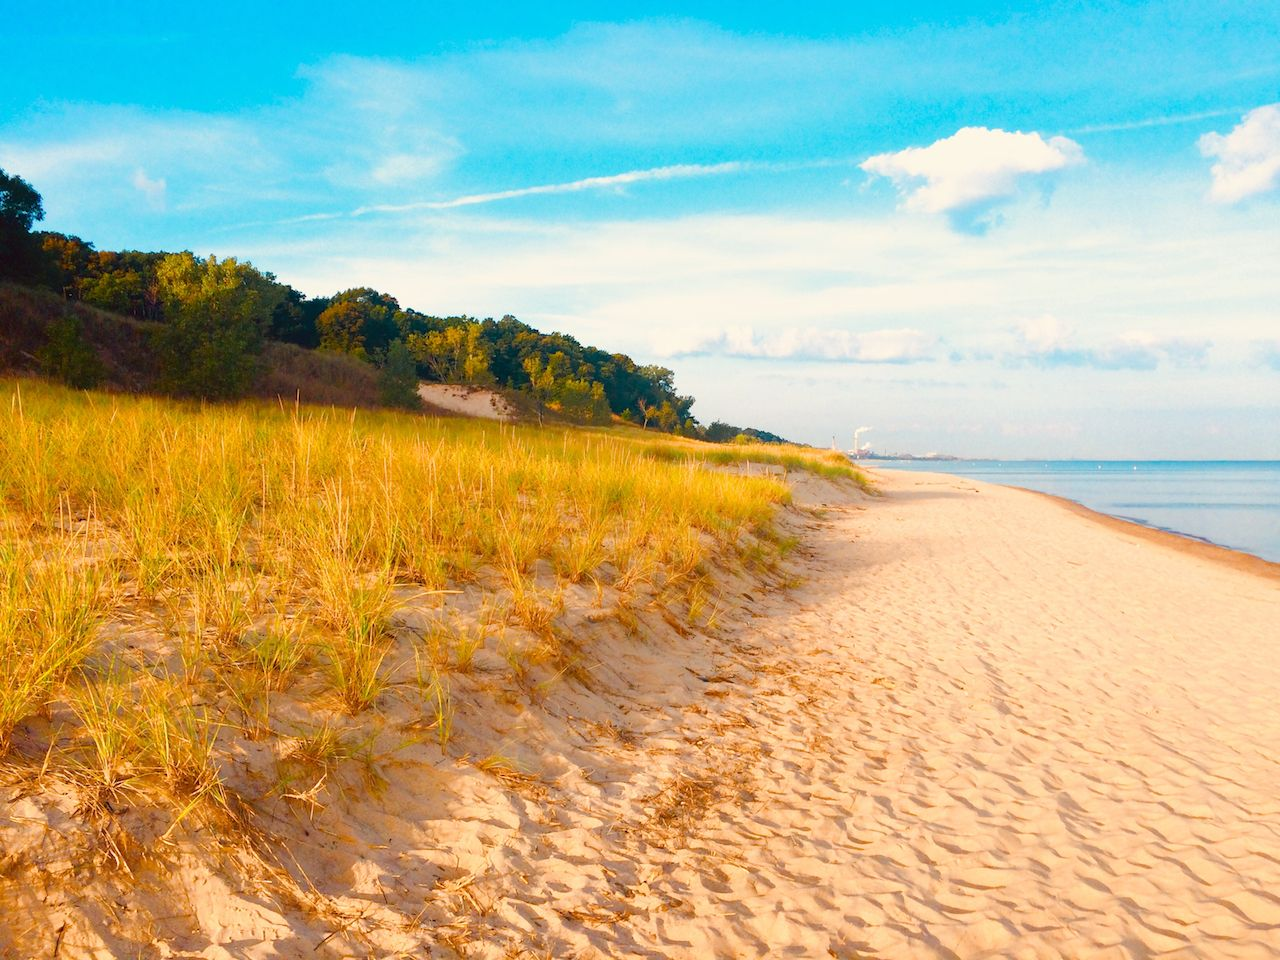 Golden Beachfront, Indiana Dunes